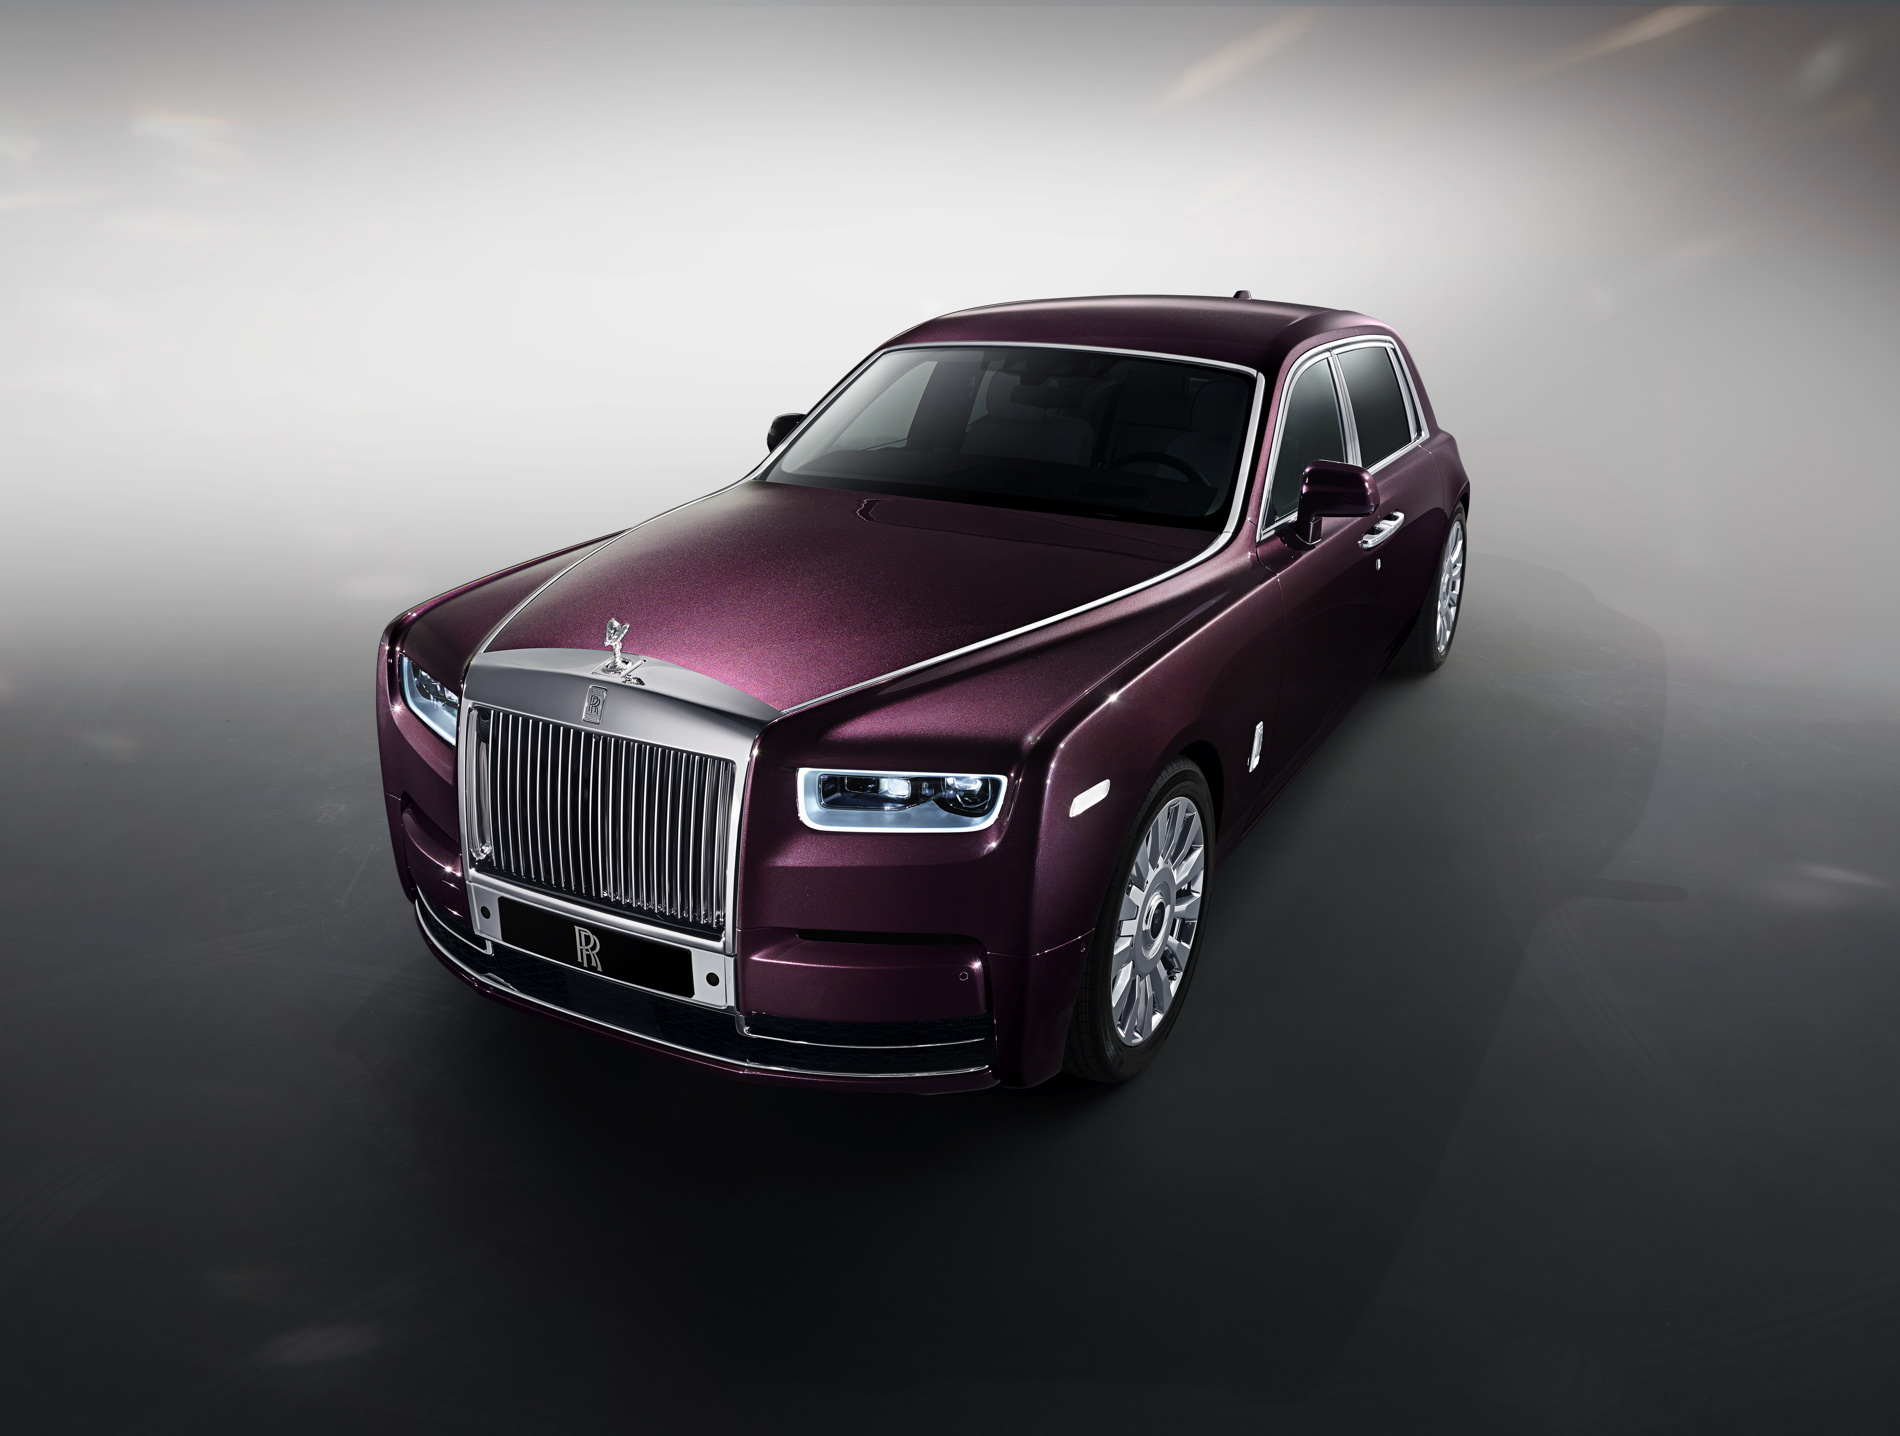 New Rolls Royce Phantom Extended Wheelbase 06